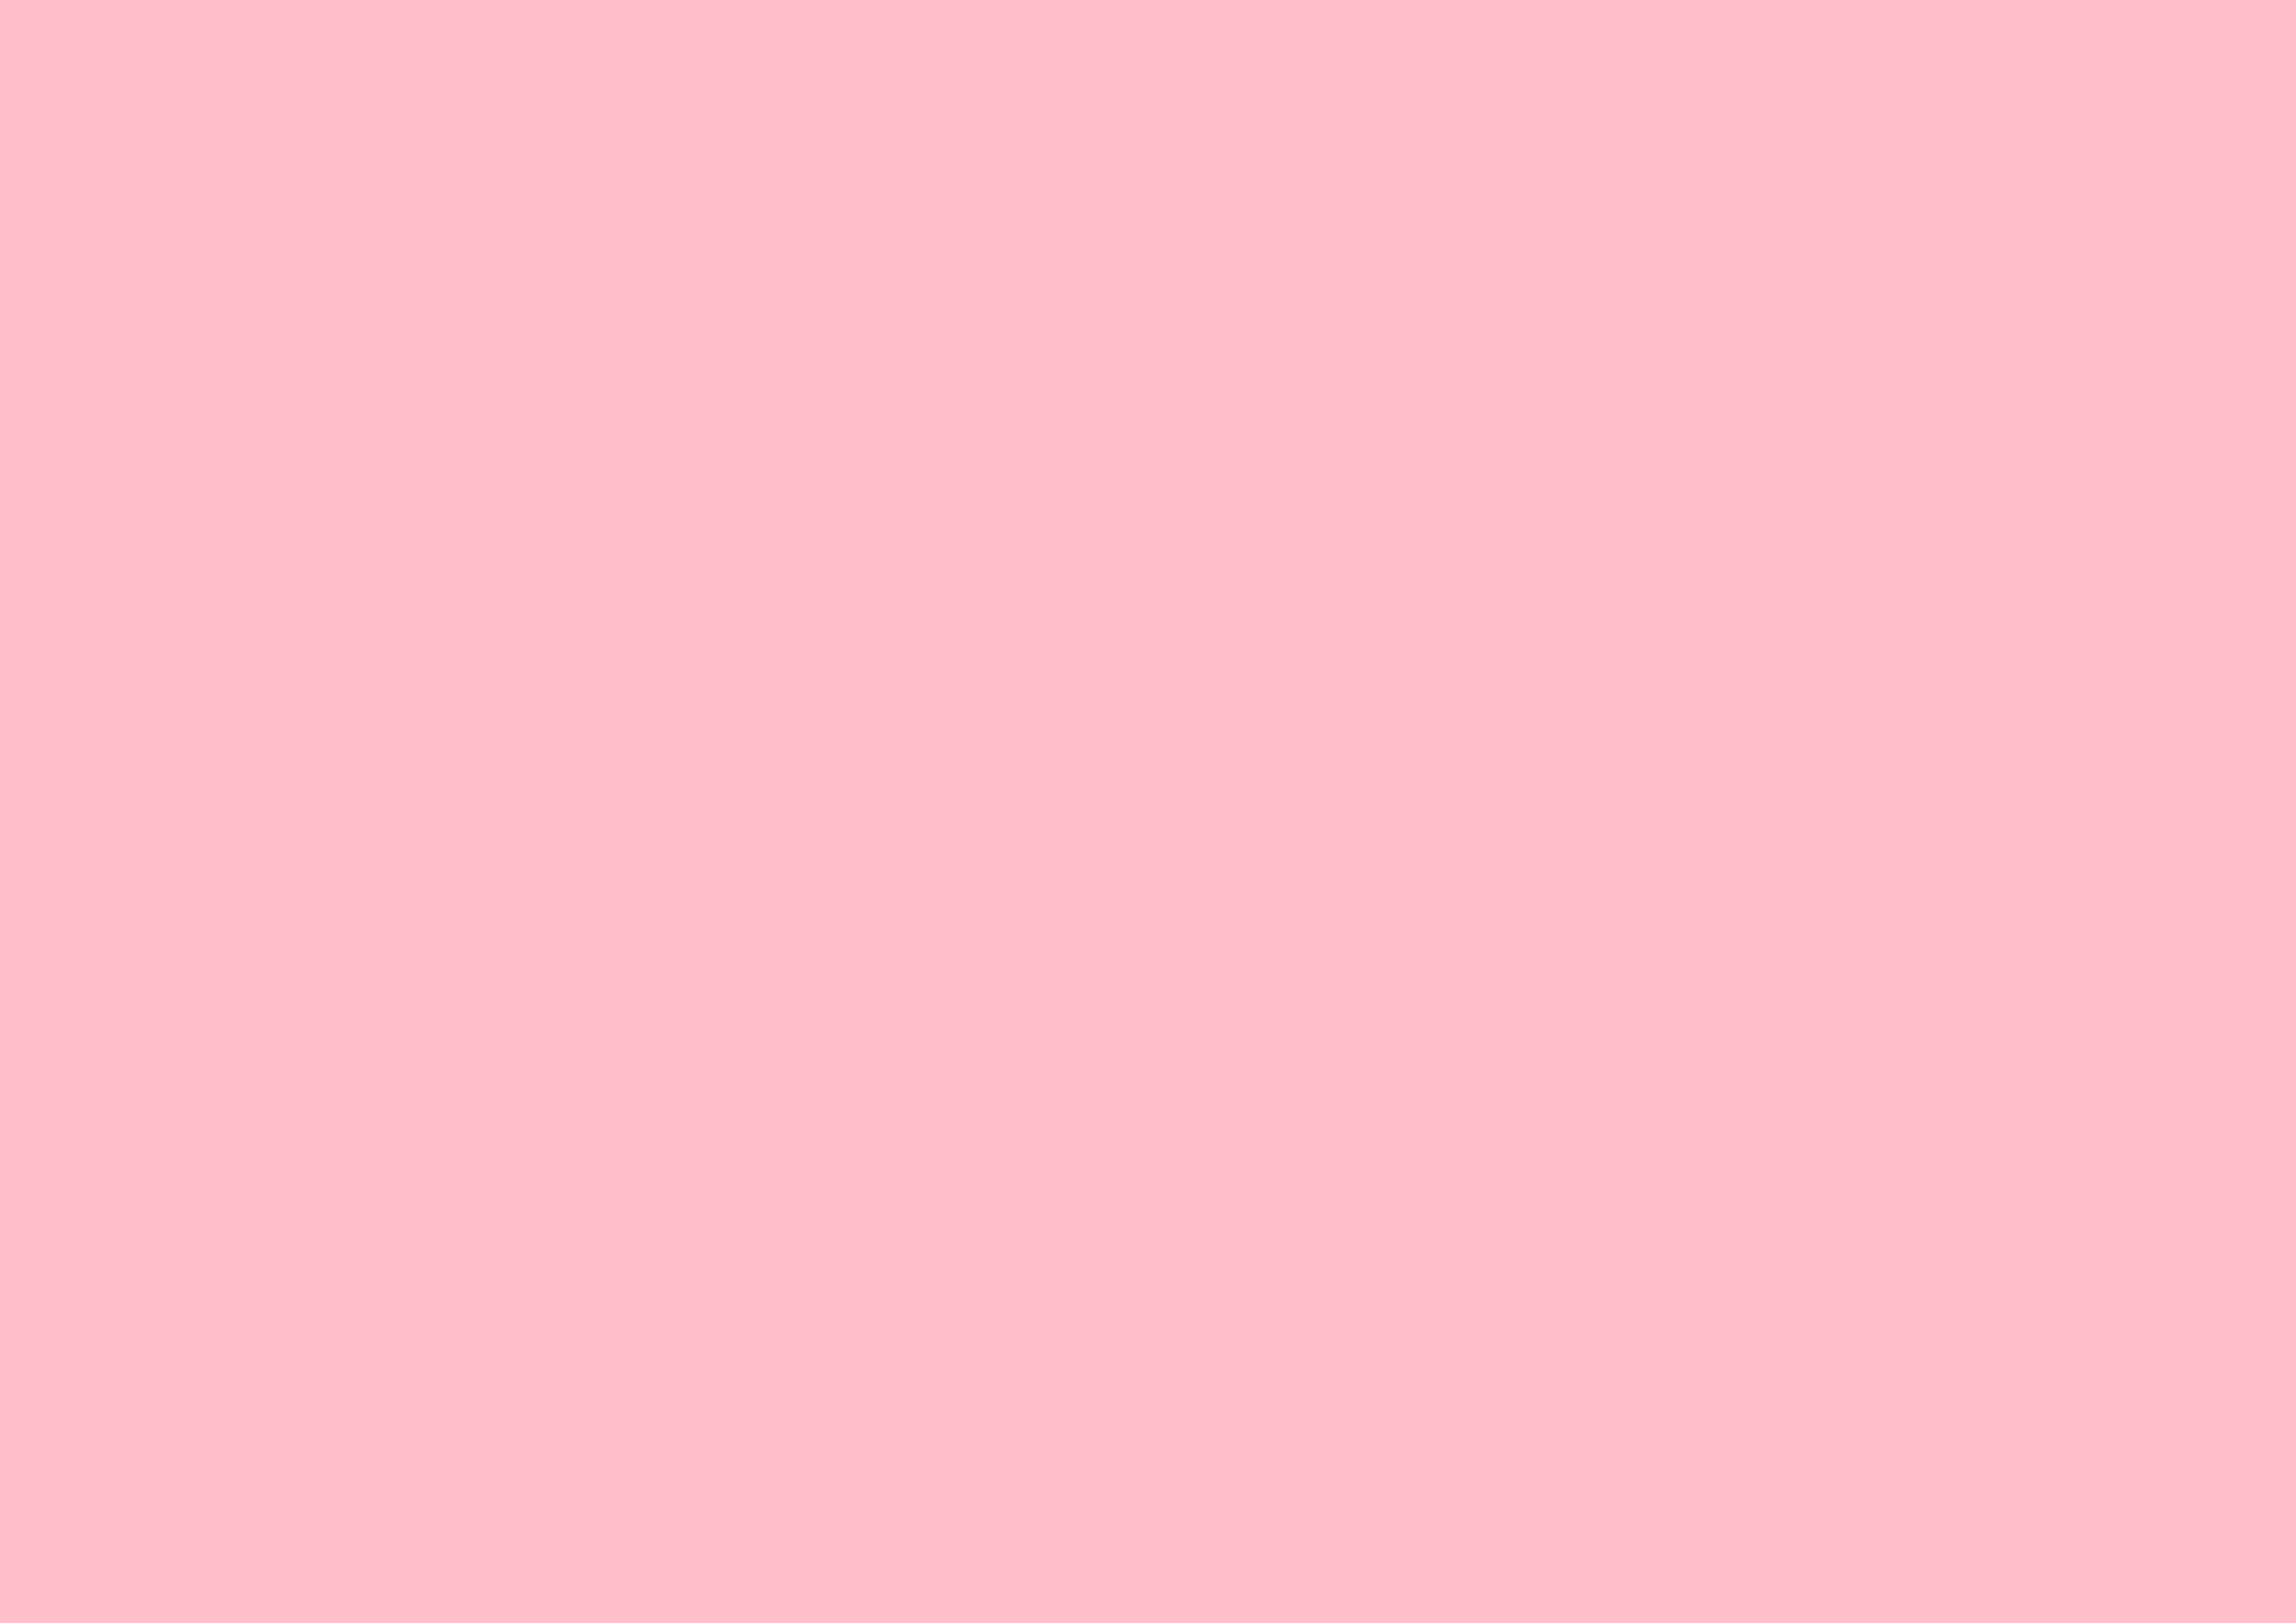 3508x2480 Pink Solid Color Background